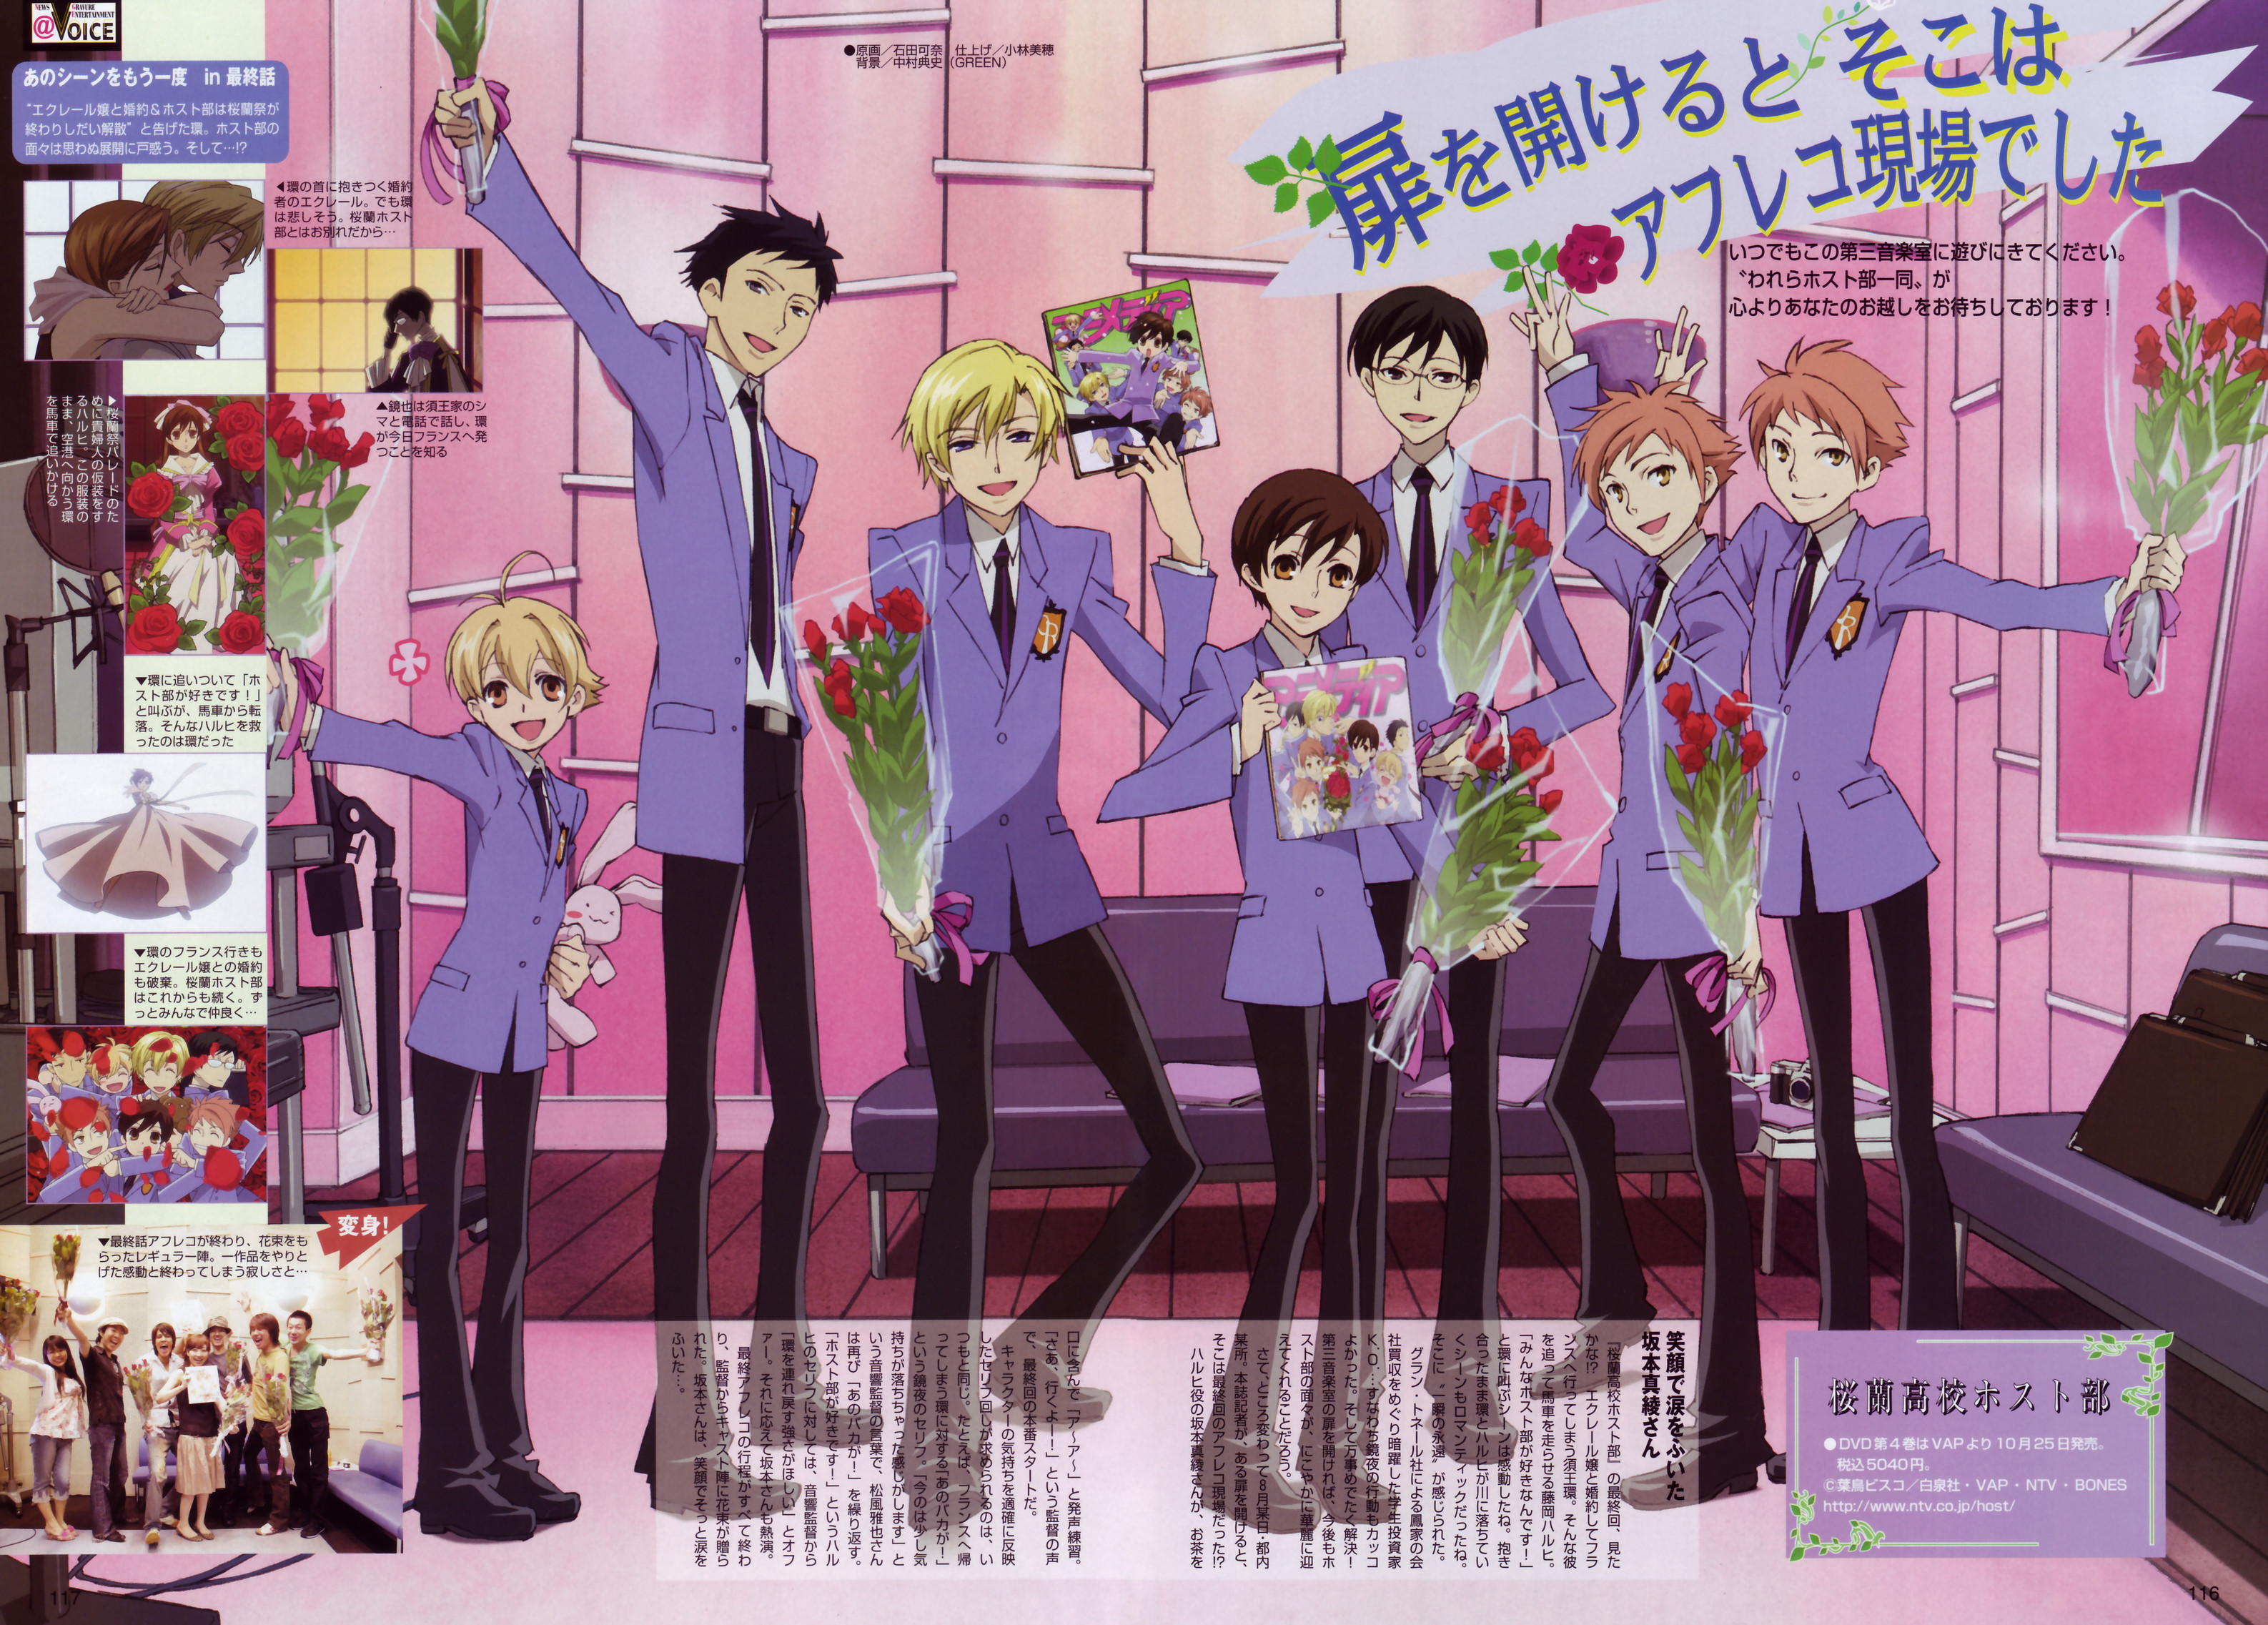 Ouran happens to be one of the very few bishie anime I've watched and enjoy.